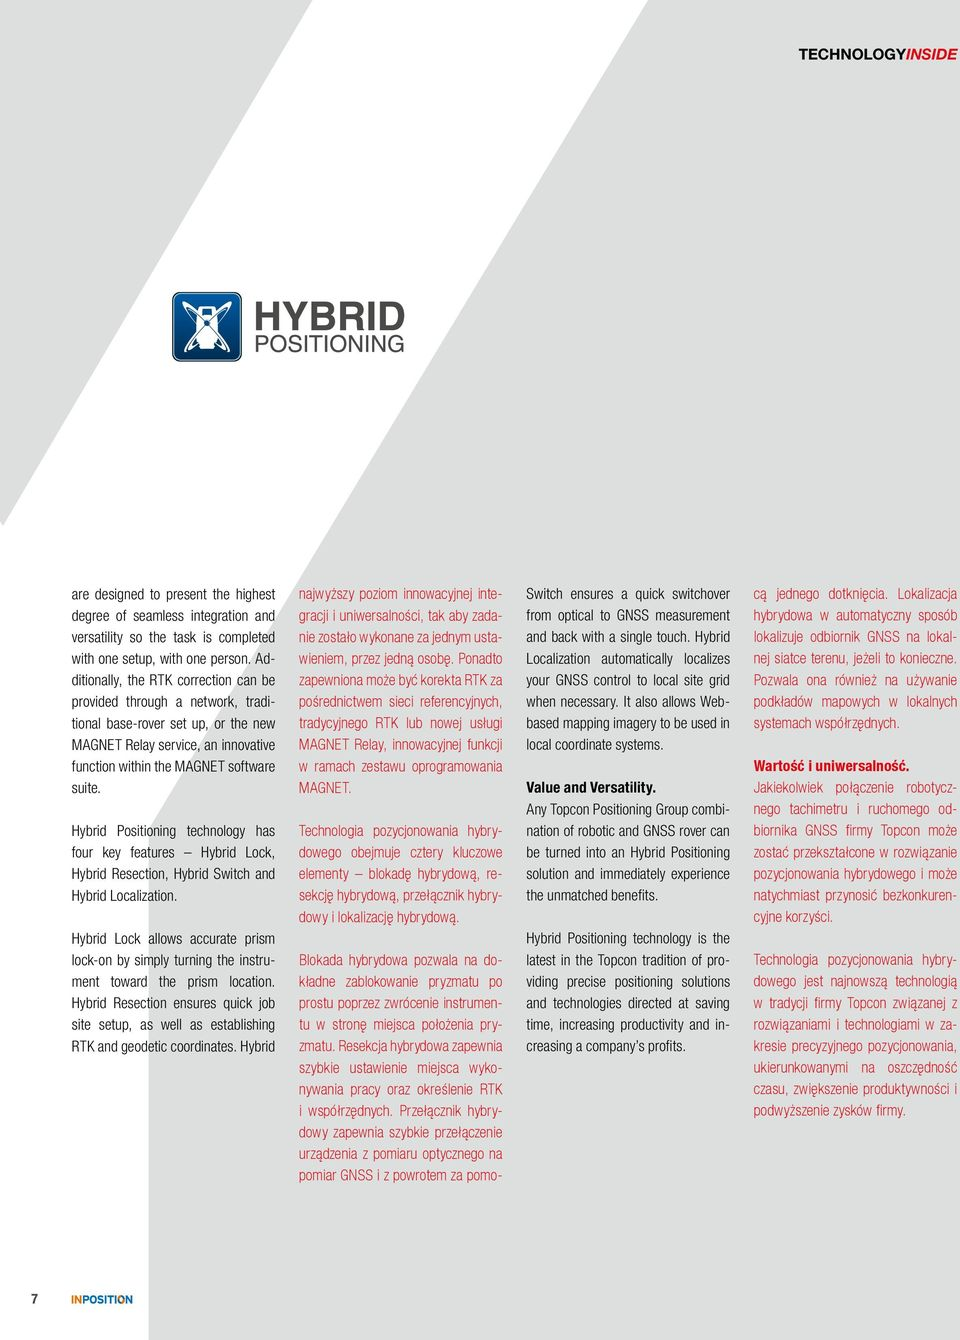 Hybrid Positioning technology has four key features Hybrid Lock, Hybrid Resection, Hybrid Switch and Hybrid Localization.